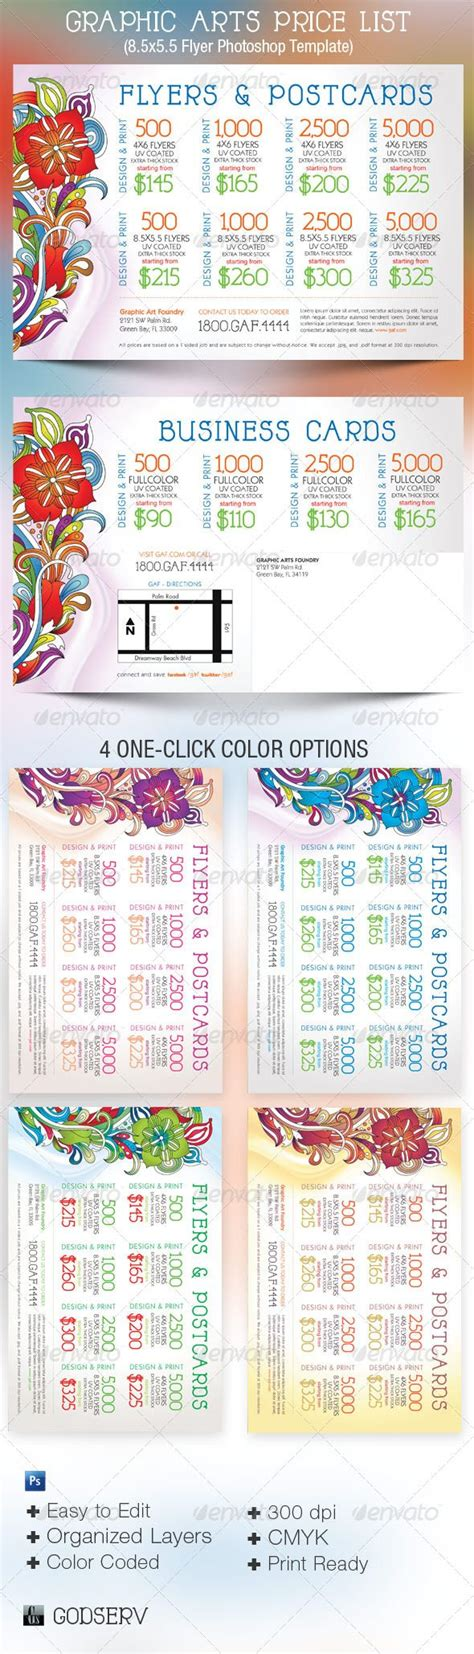 postcard template graphicriver graphic arts price flyer and postcard template the